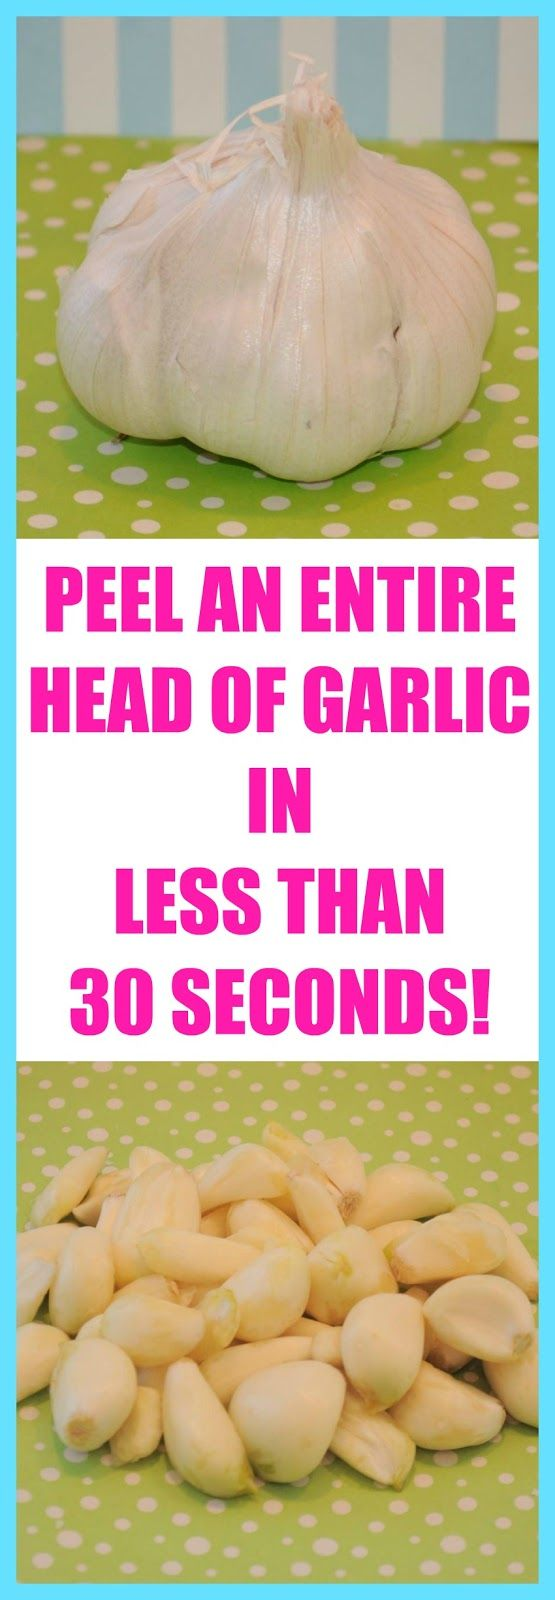 Peel an entire head of garlic in less than 30 seconds...kinda like performing a magic trick in your kitchen! I cannot believe how well this worked!